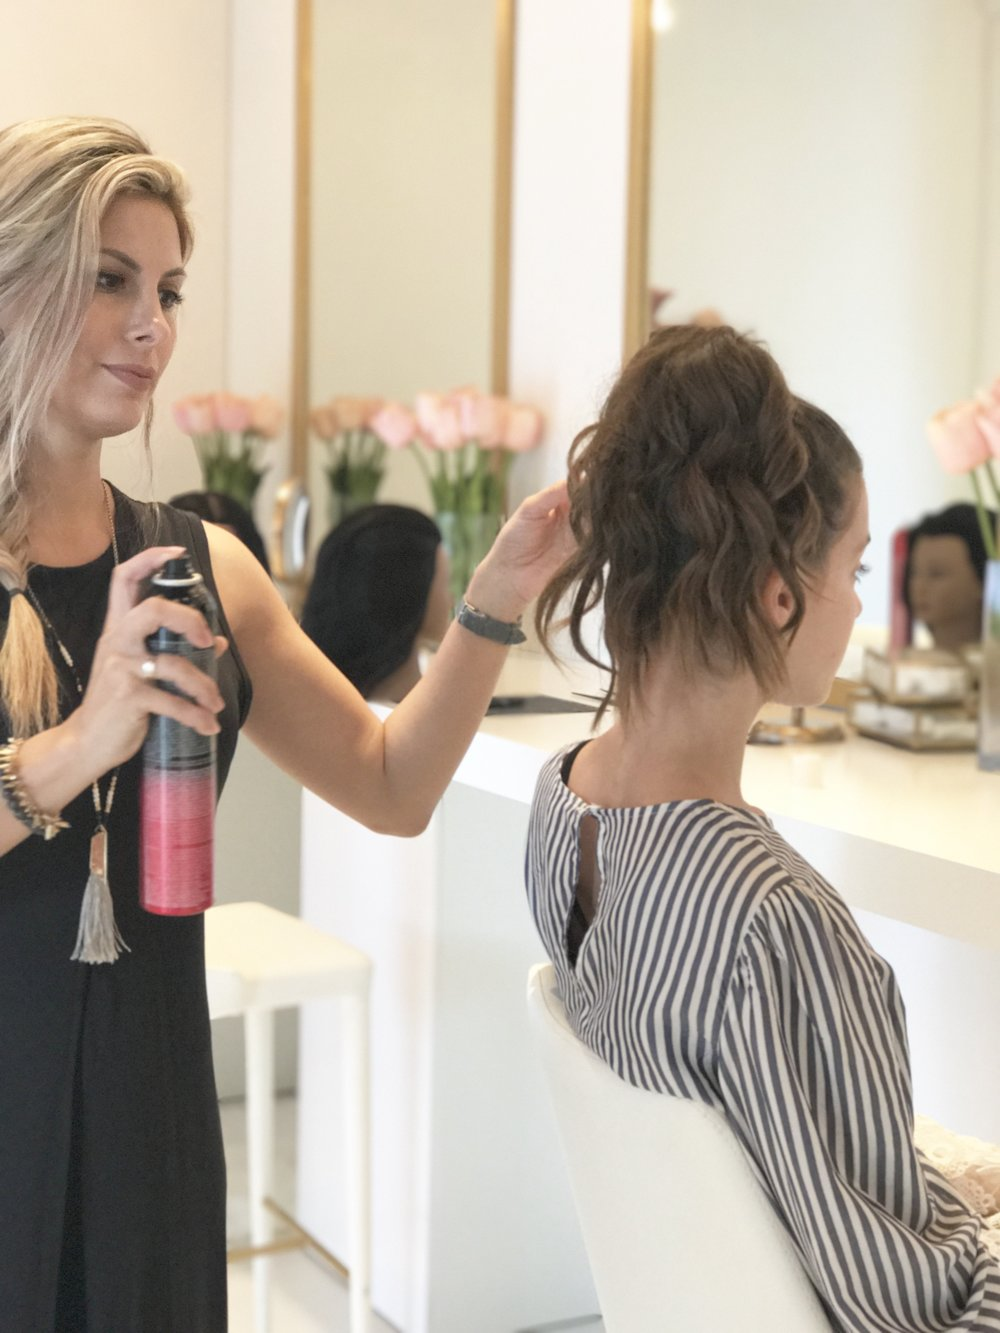 Hair Styling Lessons Mesmerizing Hairstyling Lessons — All Things Mely